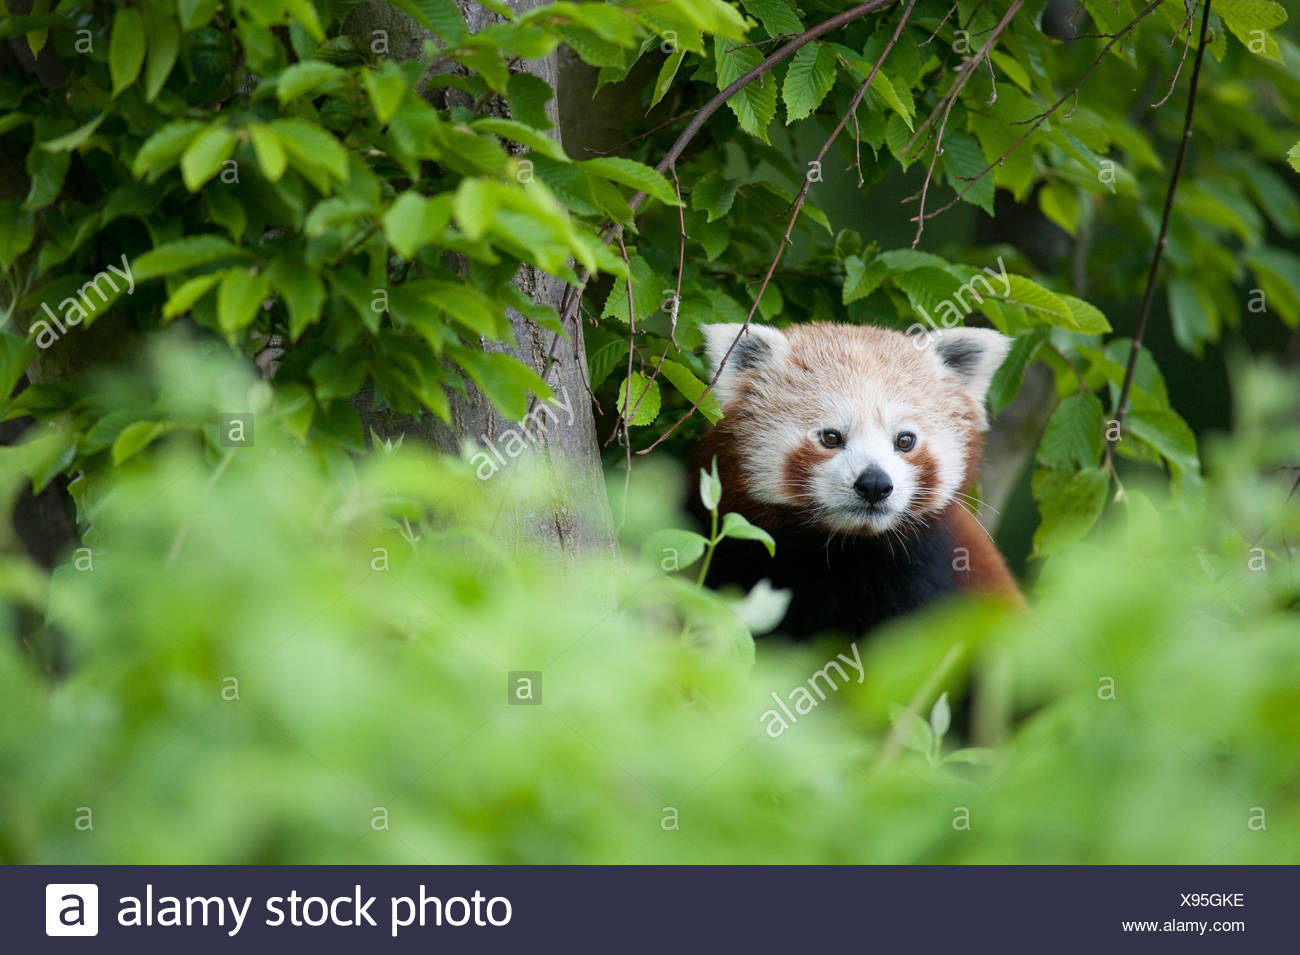 Red Panda, Ailurus fulgens, Captive, China, lesser panda and red cat-bear, is a small arboreal mammal native to the eastern Himalayas and southwestern Stock Photo